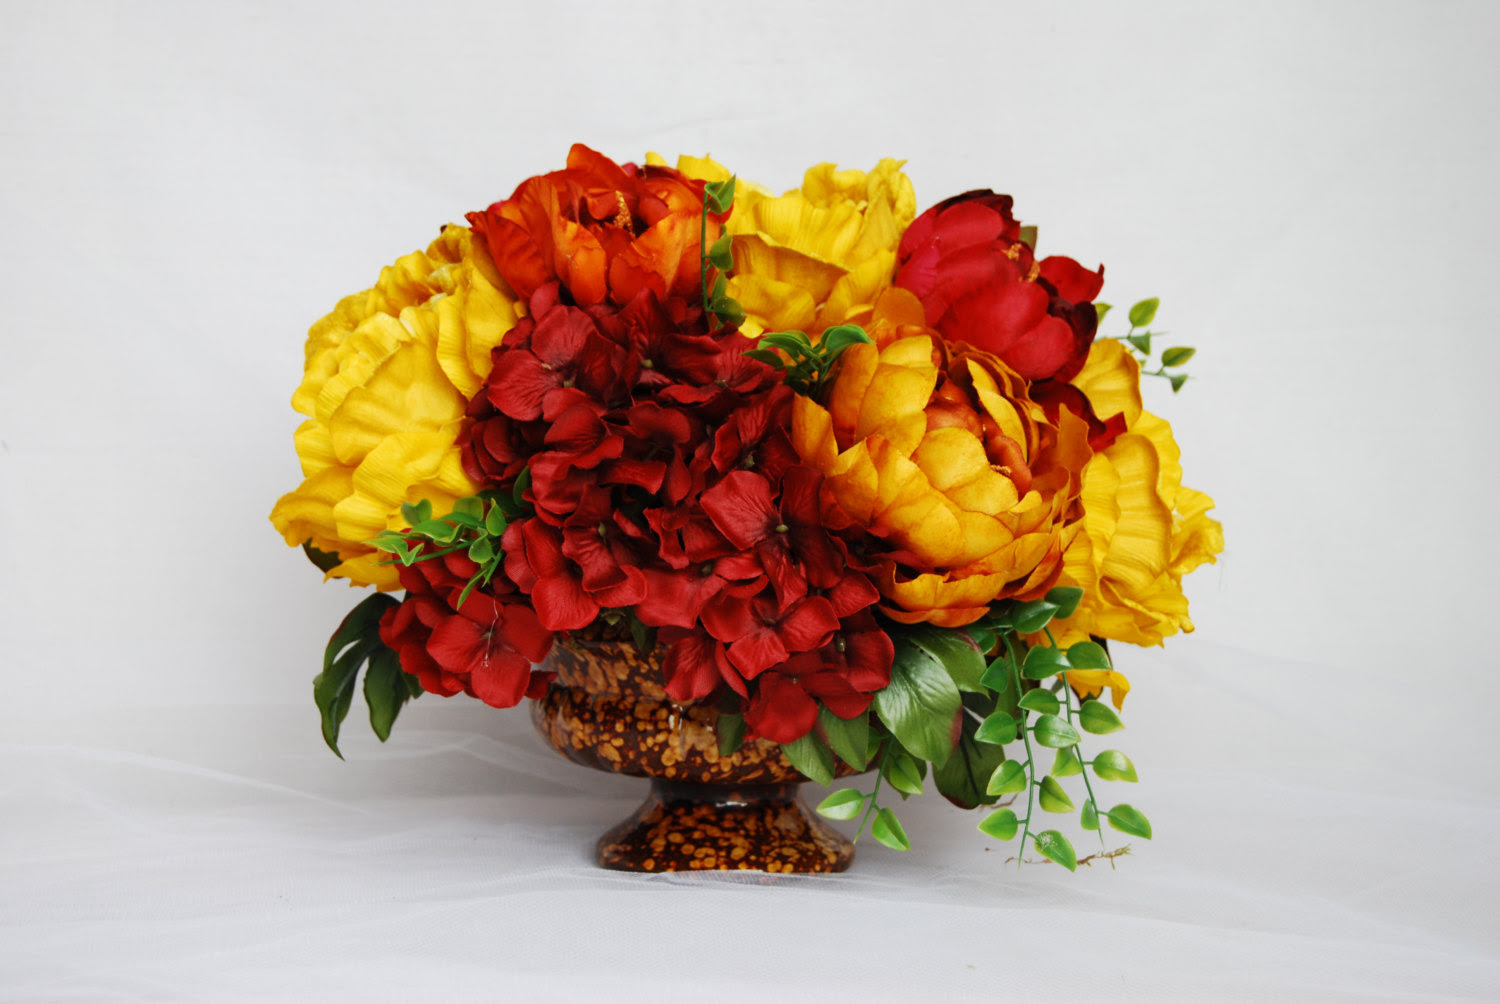 Silk Flower Arrangements Dining Table Arrangements Dining Table Centerpieces Peony Centerpiece Flower Centerpieces Orange And Yellow Floral Designs By Alka